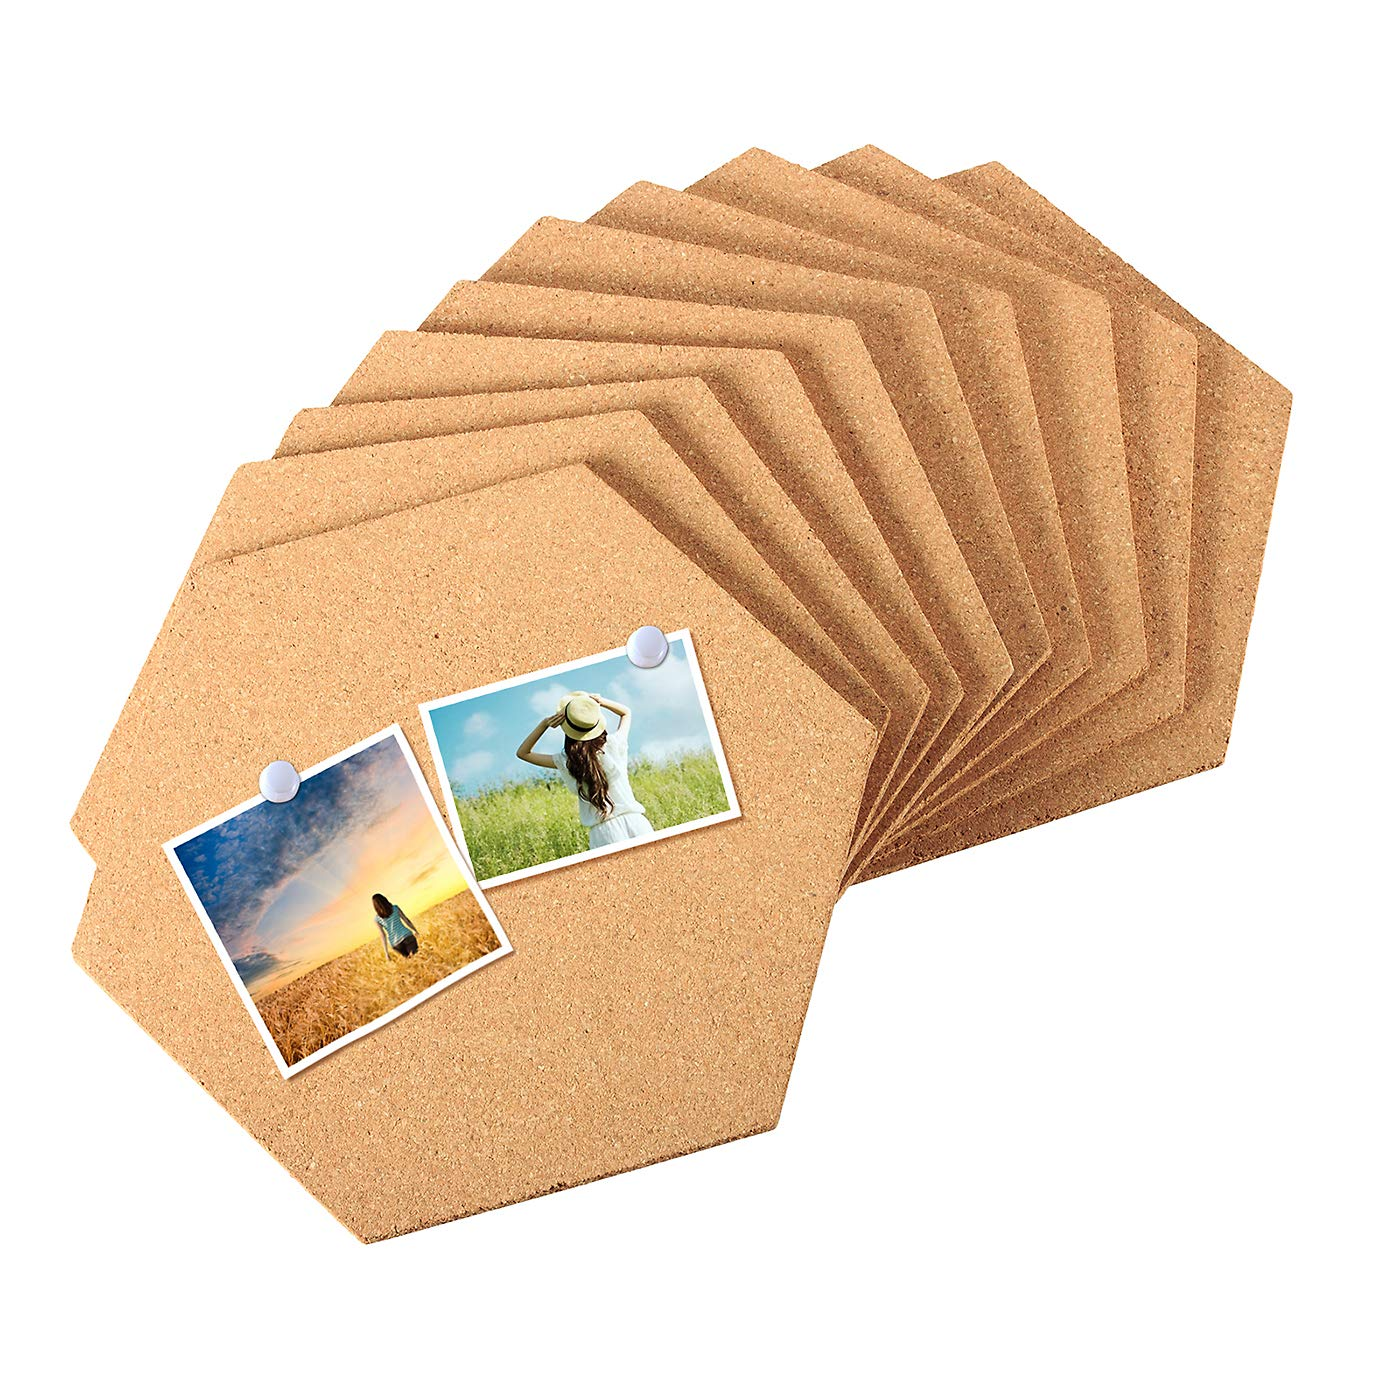 10 Pack Cork Board Tiles Mini Hexagon Wall Bulletin Boards with Full Adhesive with 50pcs Pushpins for Pictures, Photos,Notes,Notes,Drawing and Home Decorations Salare